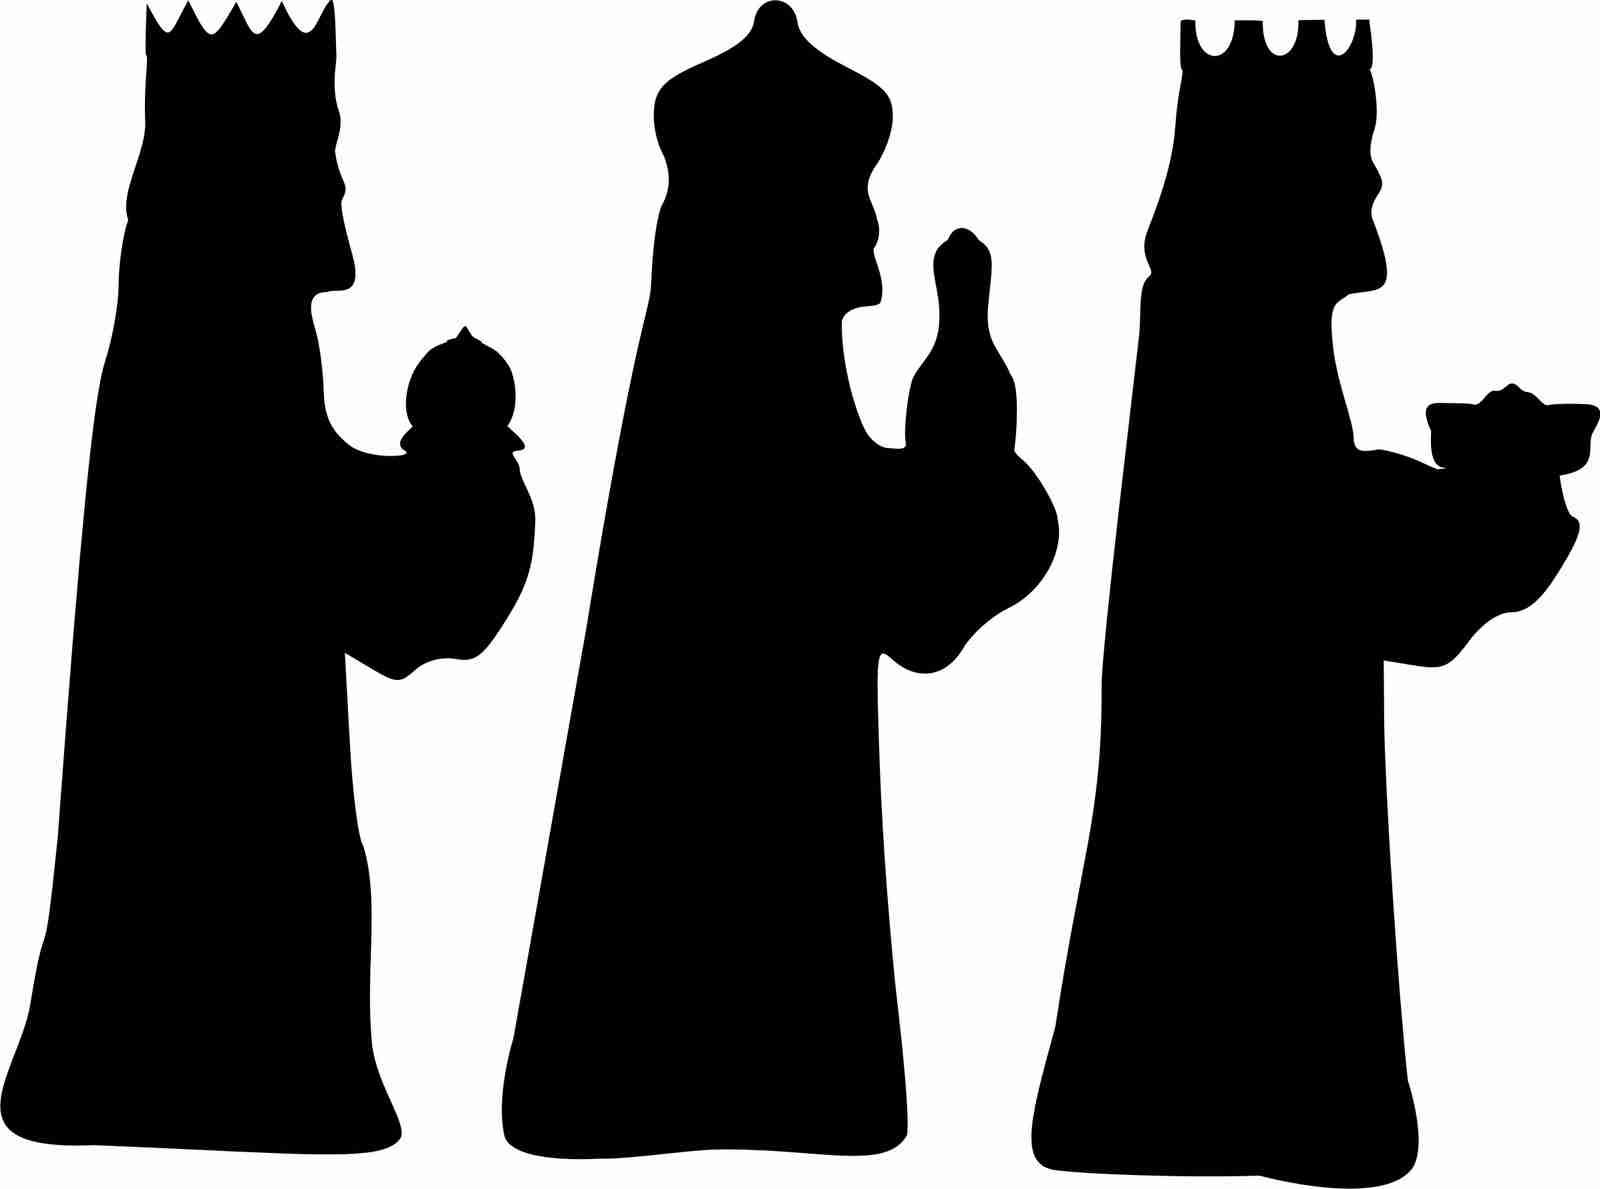 Three Kings Silhouette